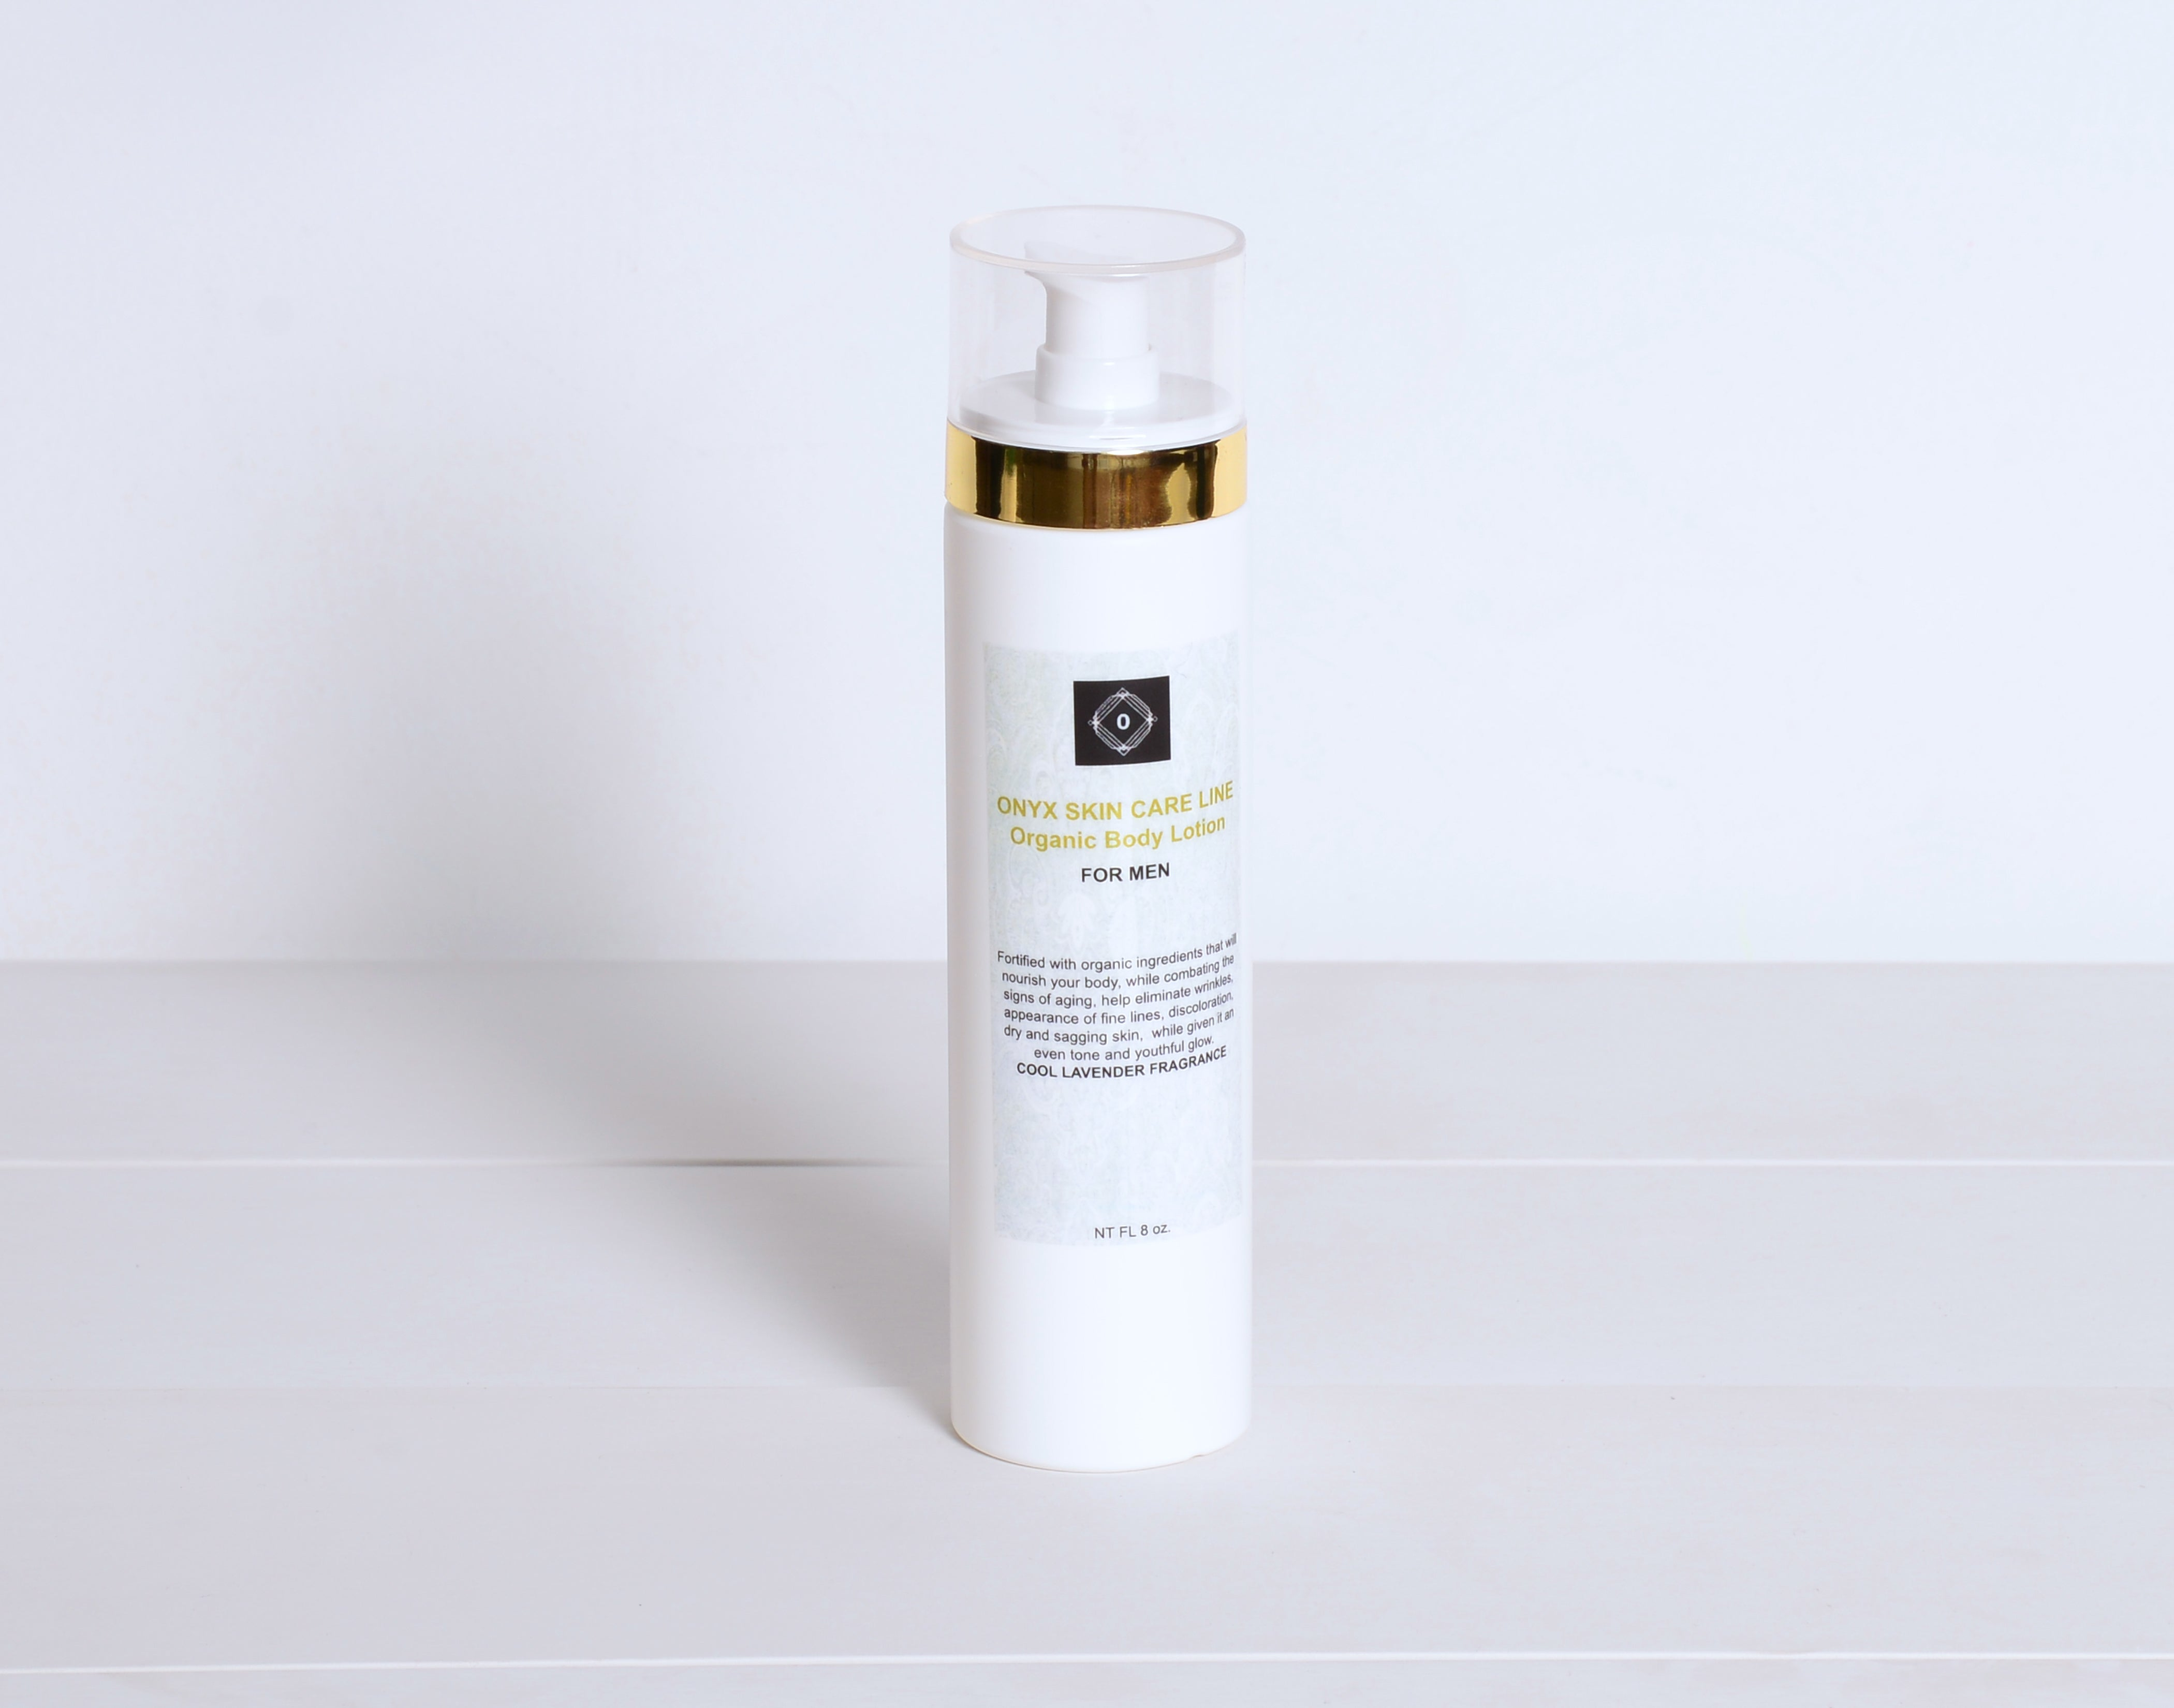 Almond Oil Infused Body Lotion - For MEN - Fragrance Free -  ITEM CODE: BDYLOREGFRGFRMN02